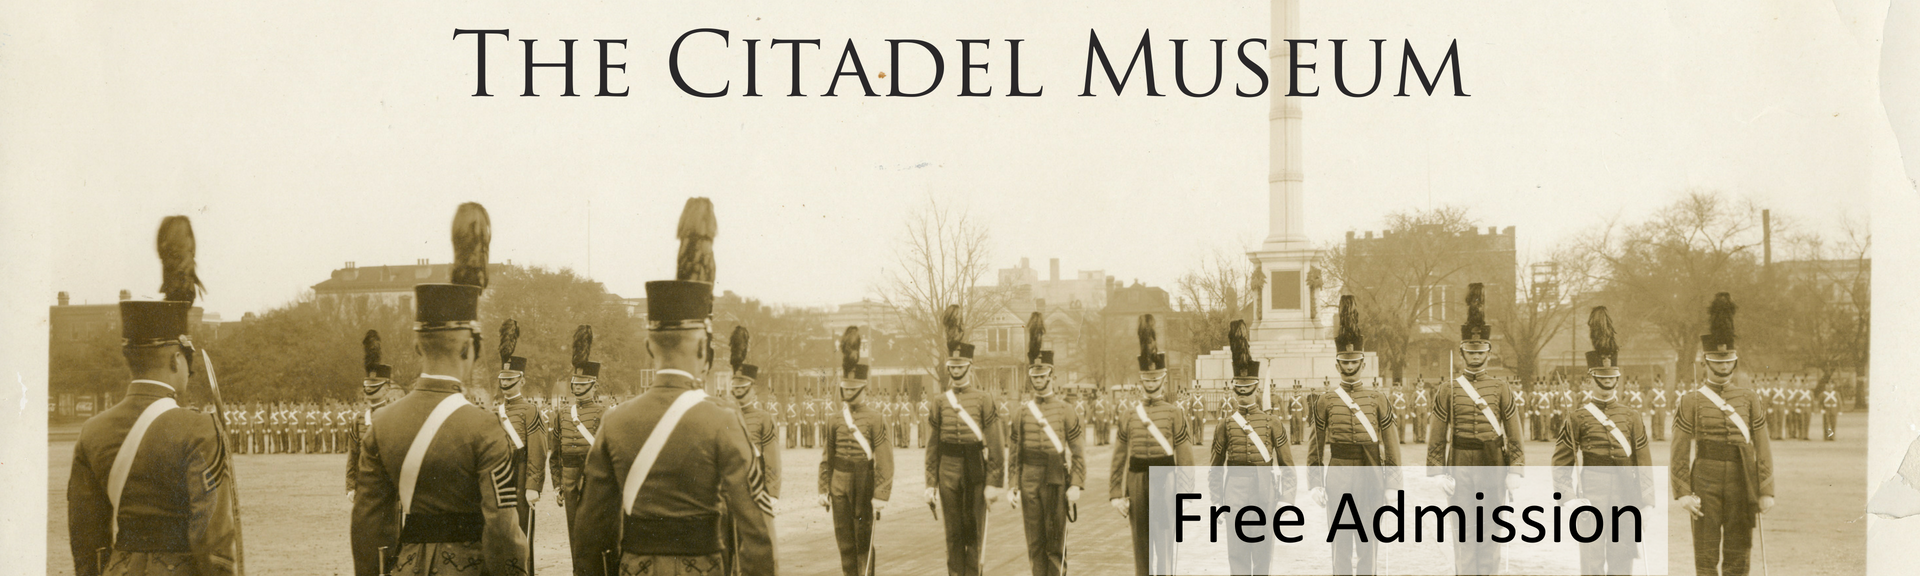 Free admission to the Citadel Museum